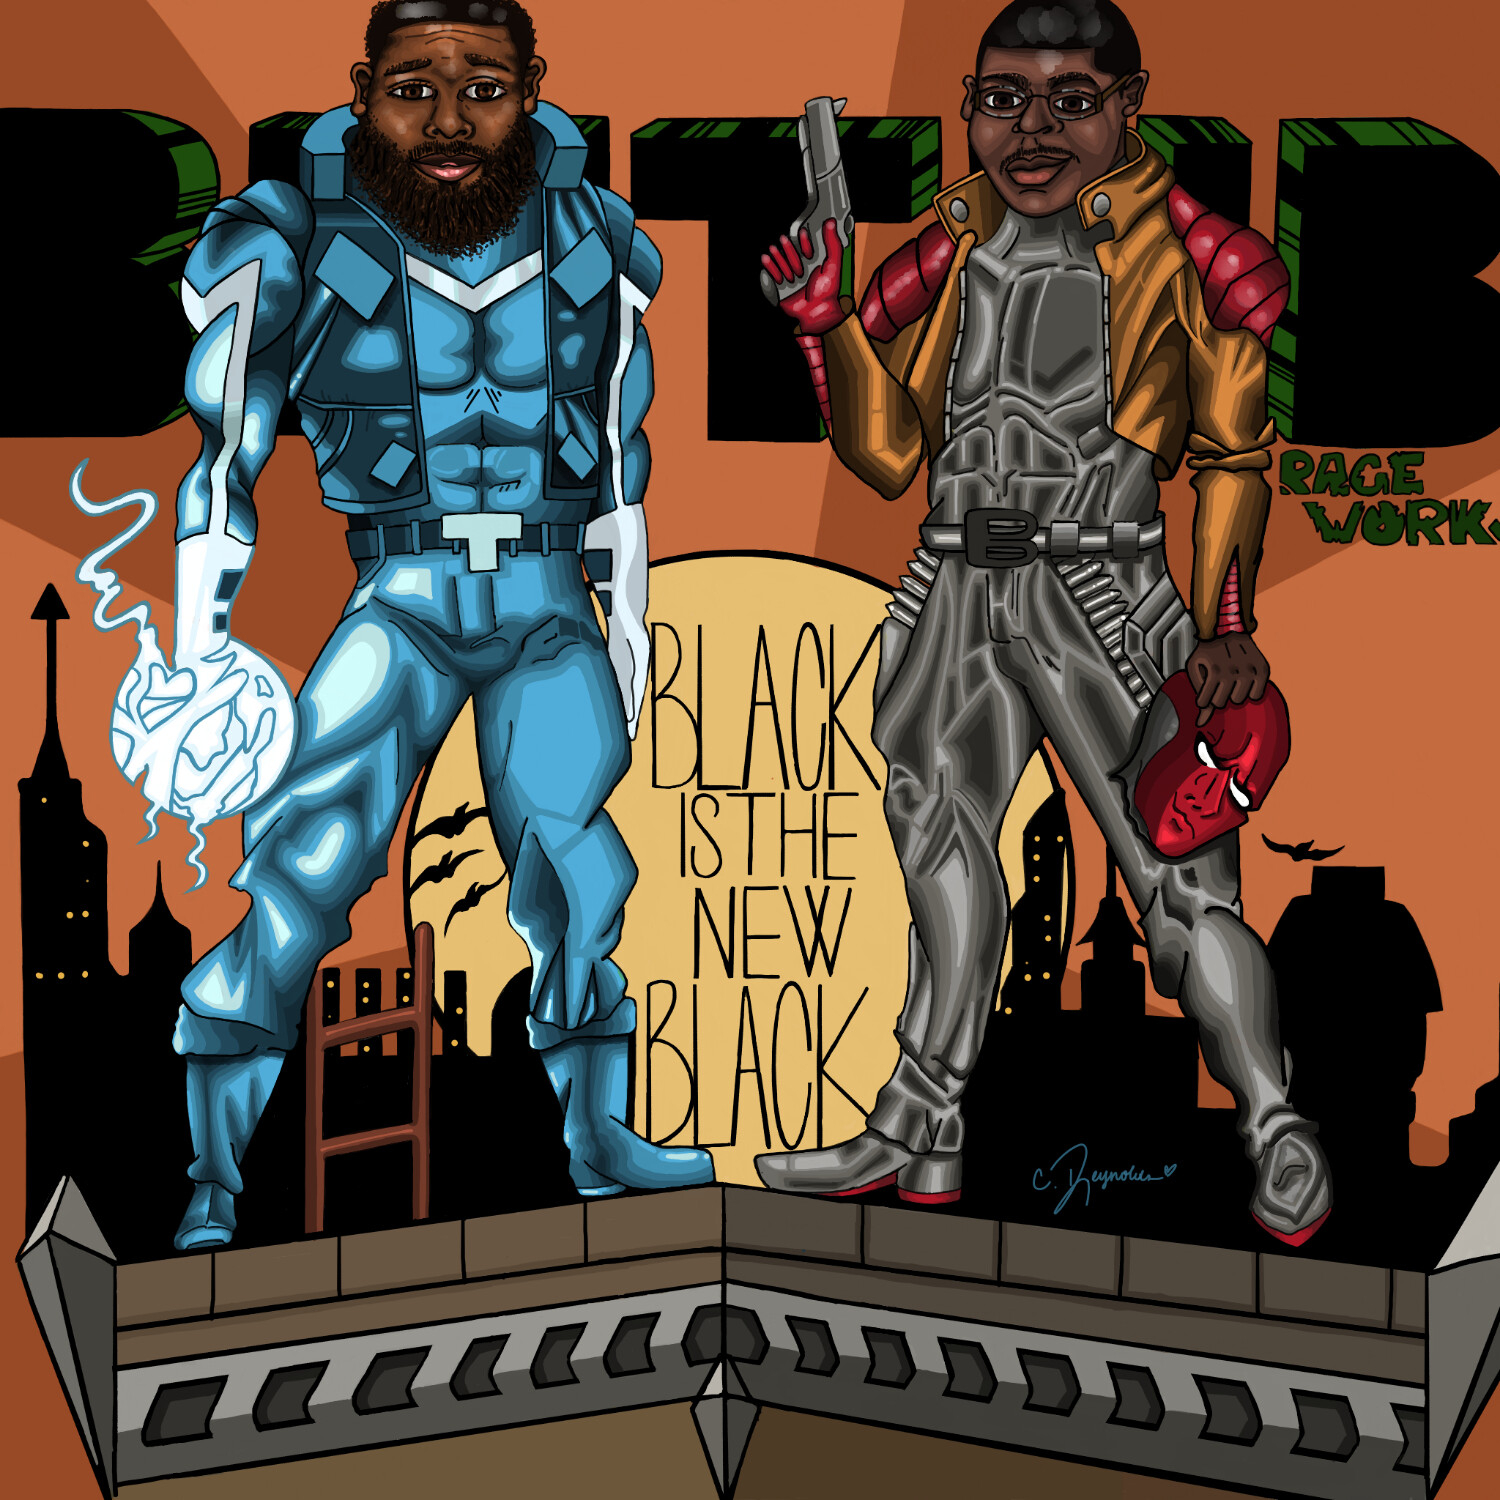 Black is the New Black-Episode 118